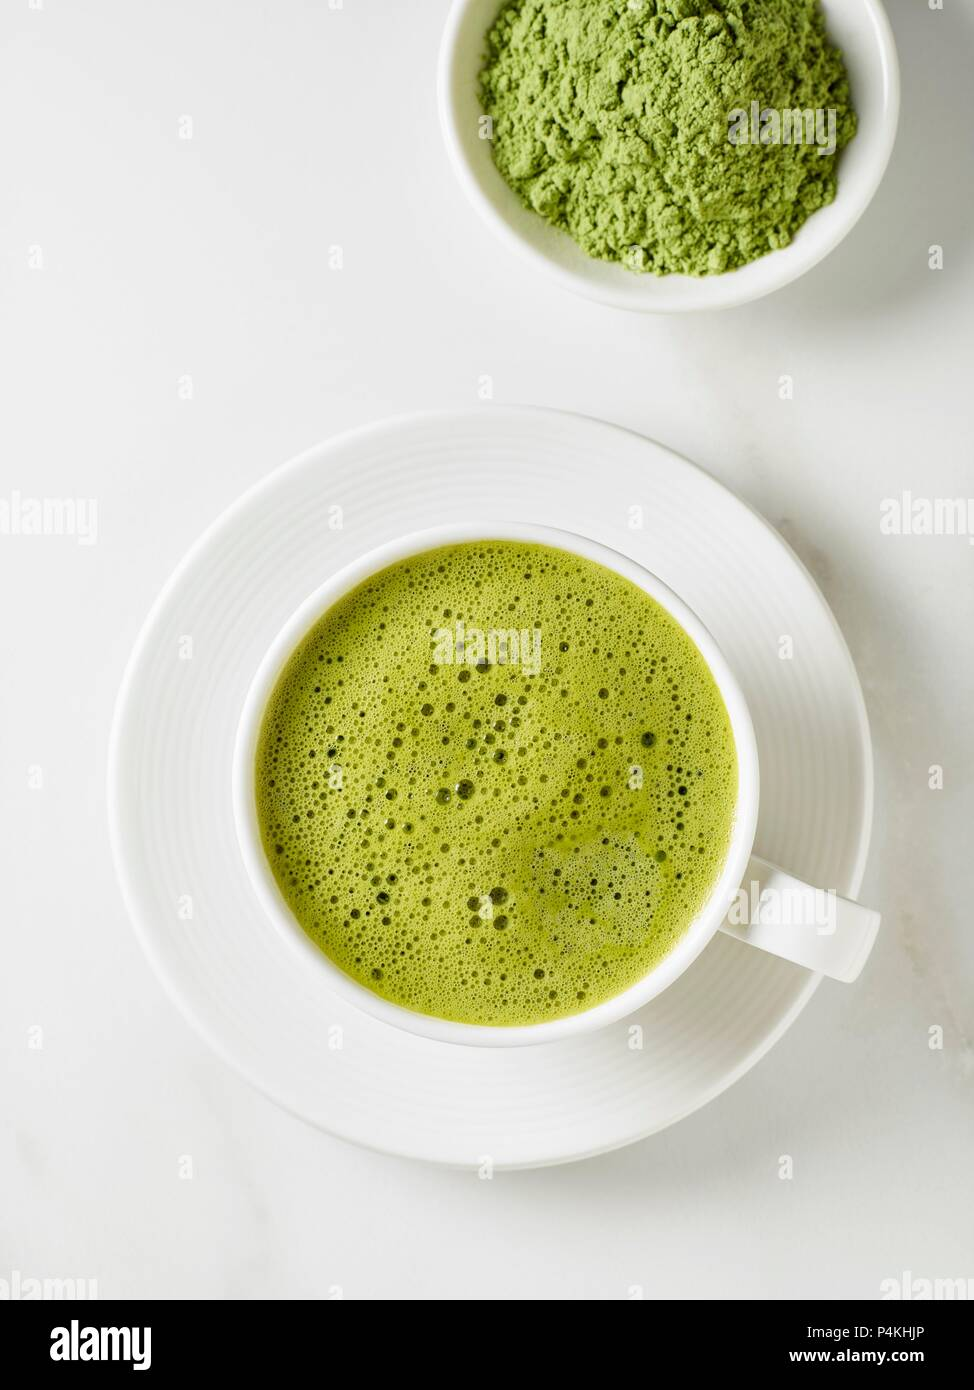 A cup of matcha tea and a bowl of tea powder (see above) - Stock Image